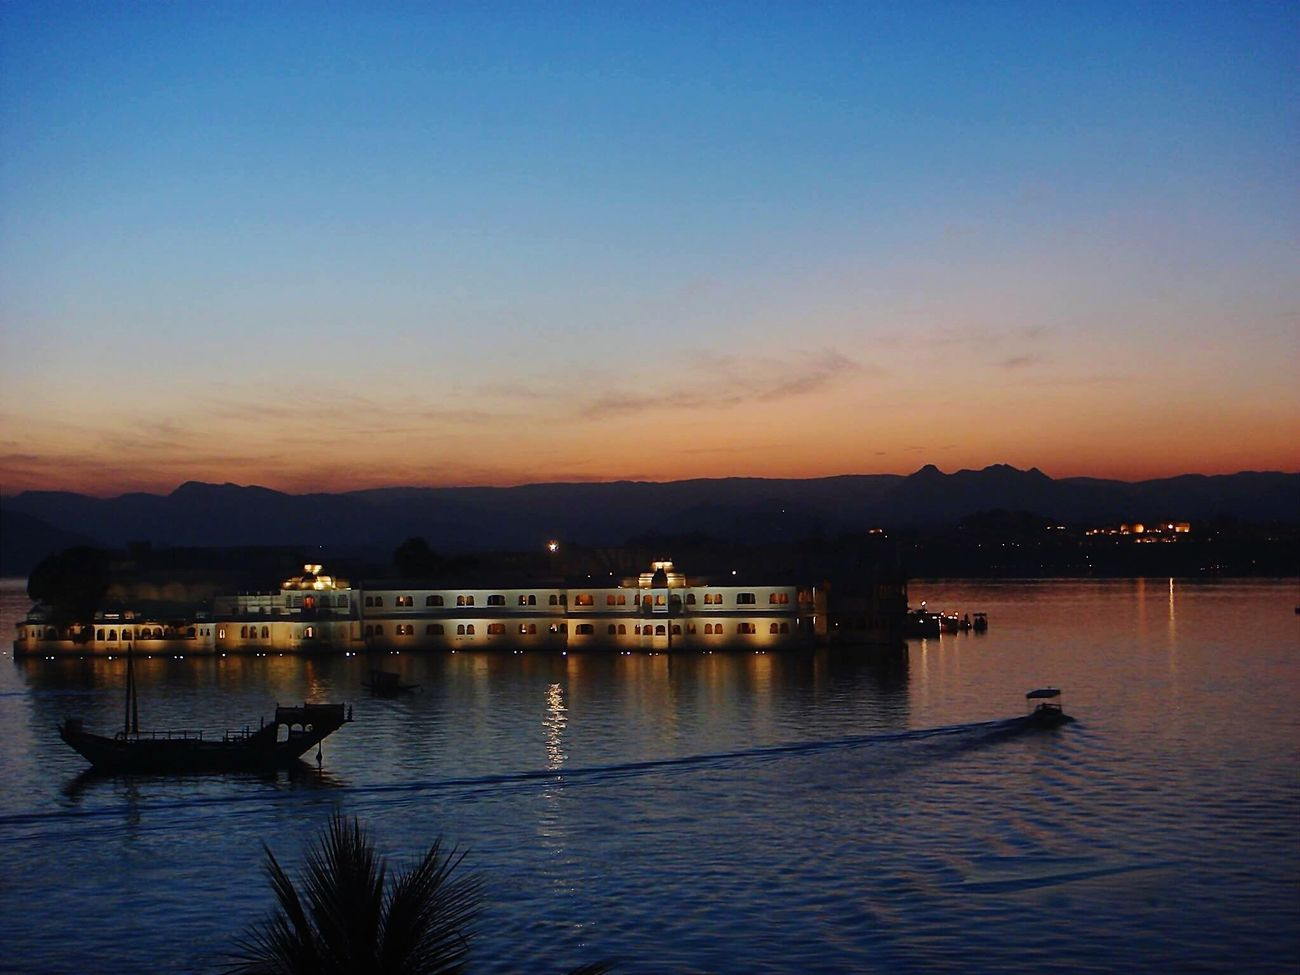 Lake Palace, Udaipur, India. Water Reflection Sunset Nautical Vessel Mode Of Transport Tranquil Scene Scenics Outdoors Sky No People Lake Mountain lakeview Waterfront Silhouette lake Palace Luxury Luxuryhotel 5 Star Service 5 Star Hotel